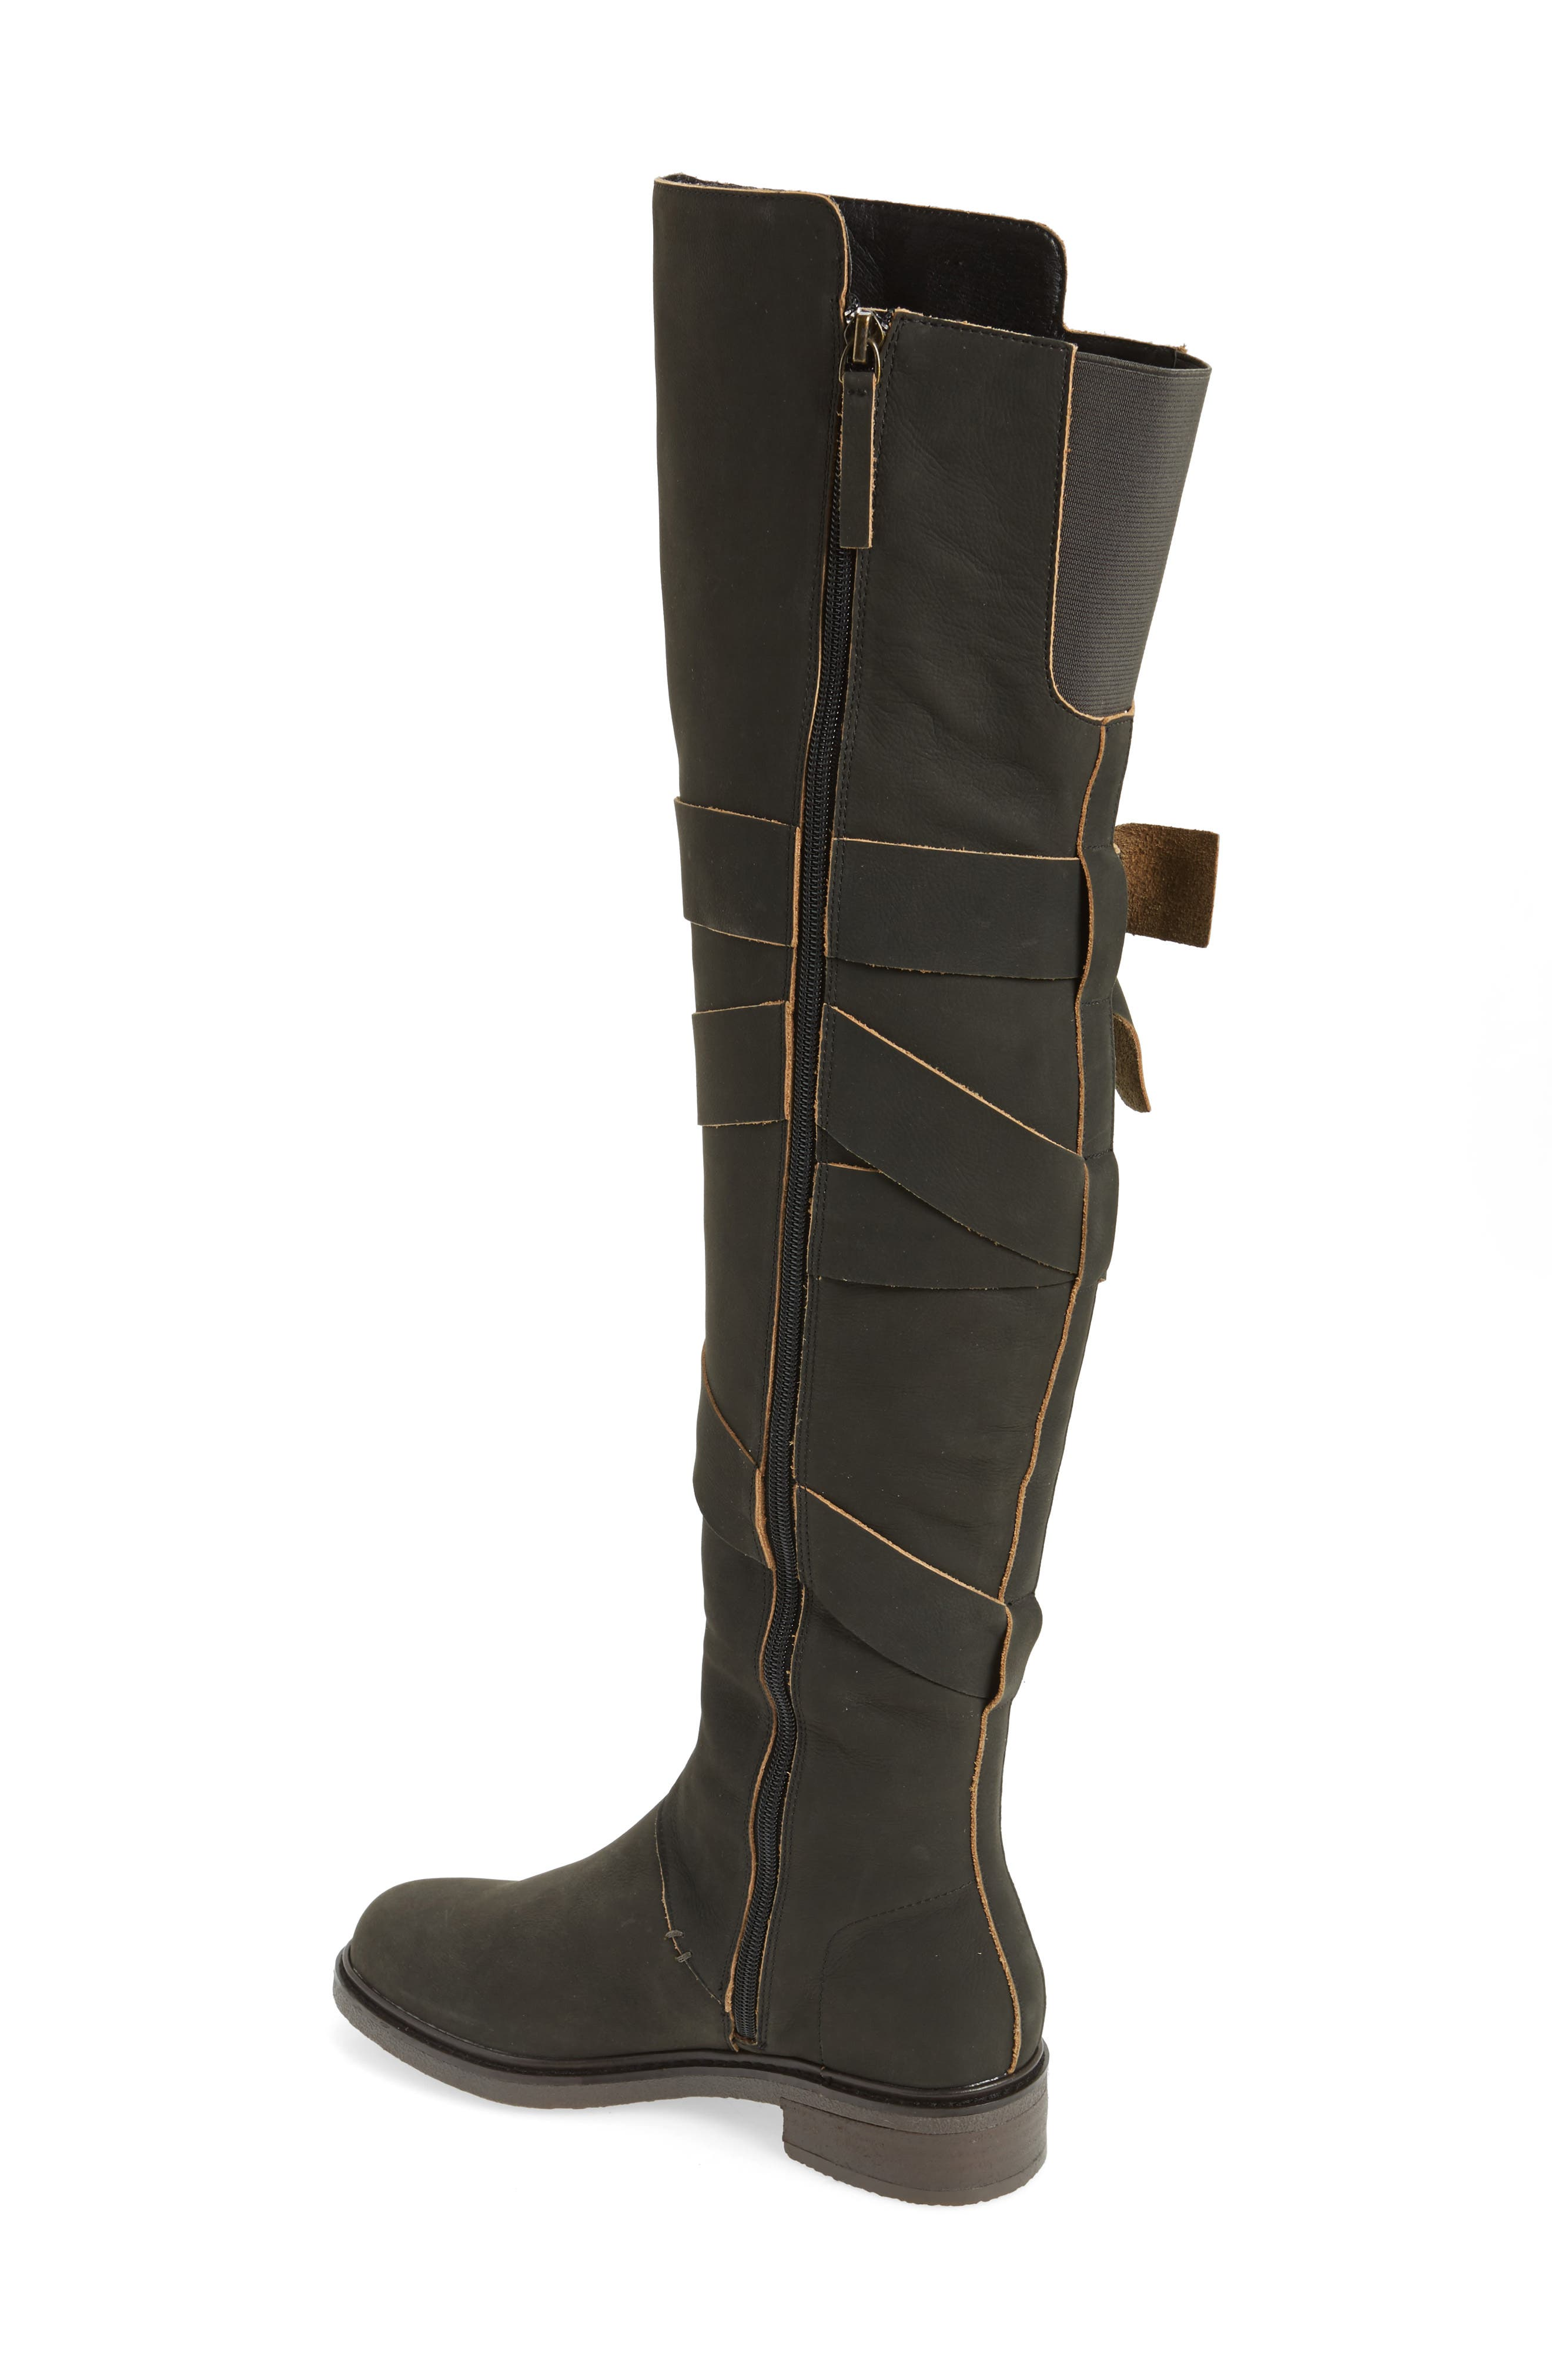 Colby Over the Knee Boot,                             Alternate thumbnail 2, color,                             001